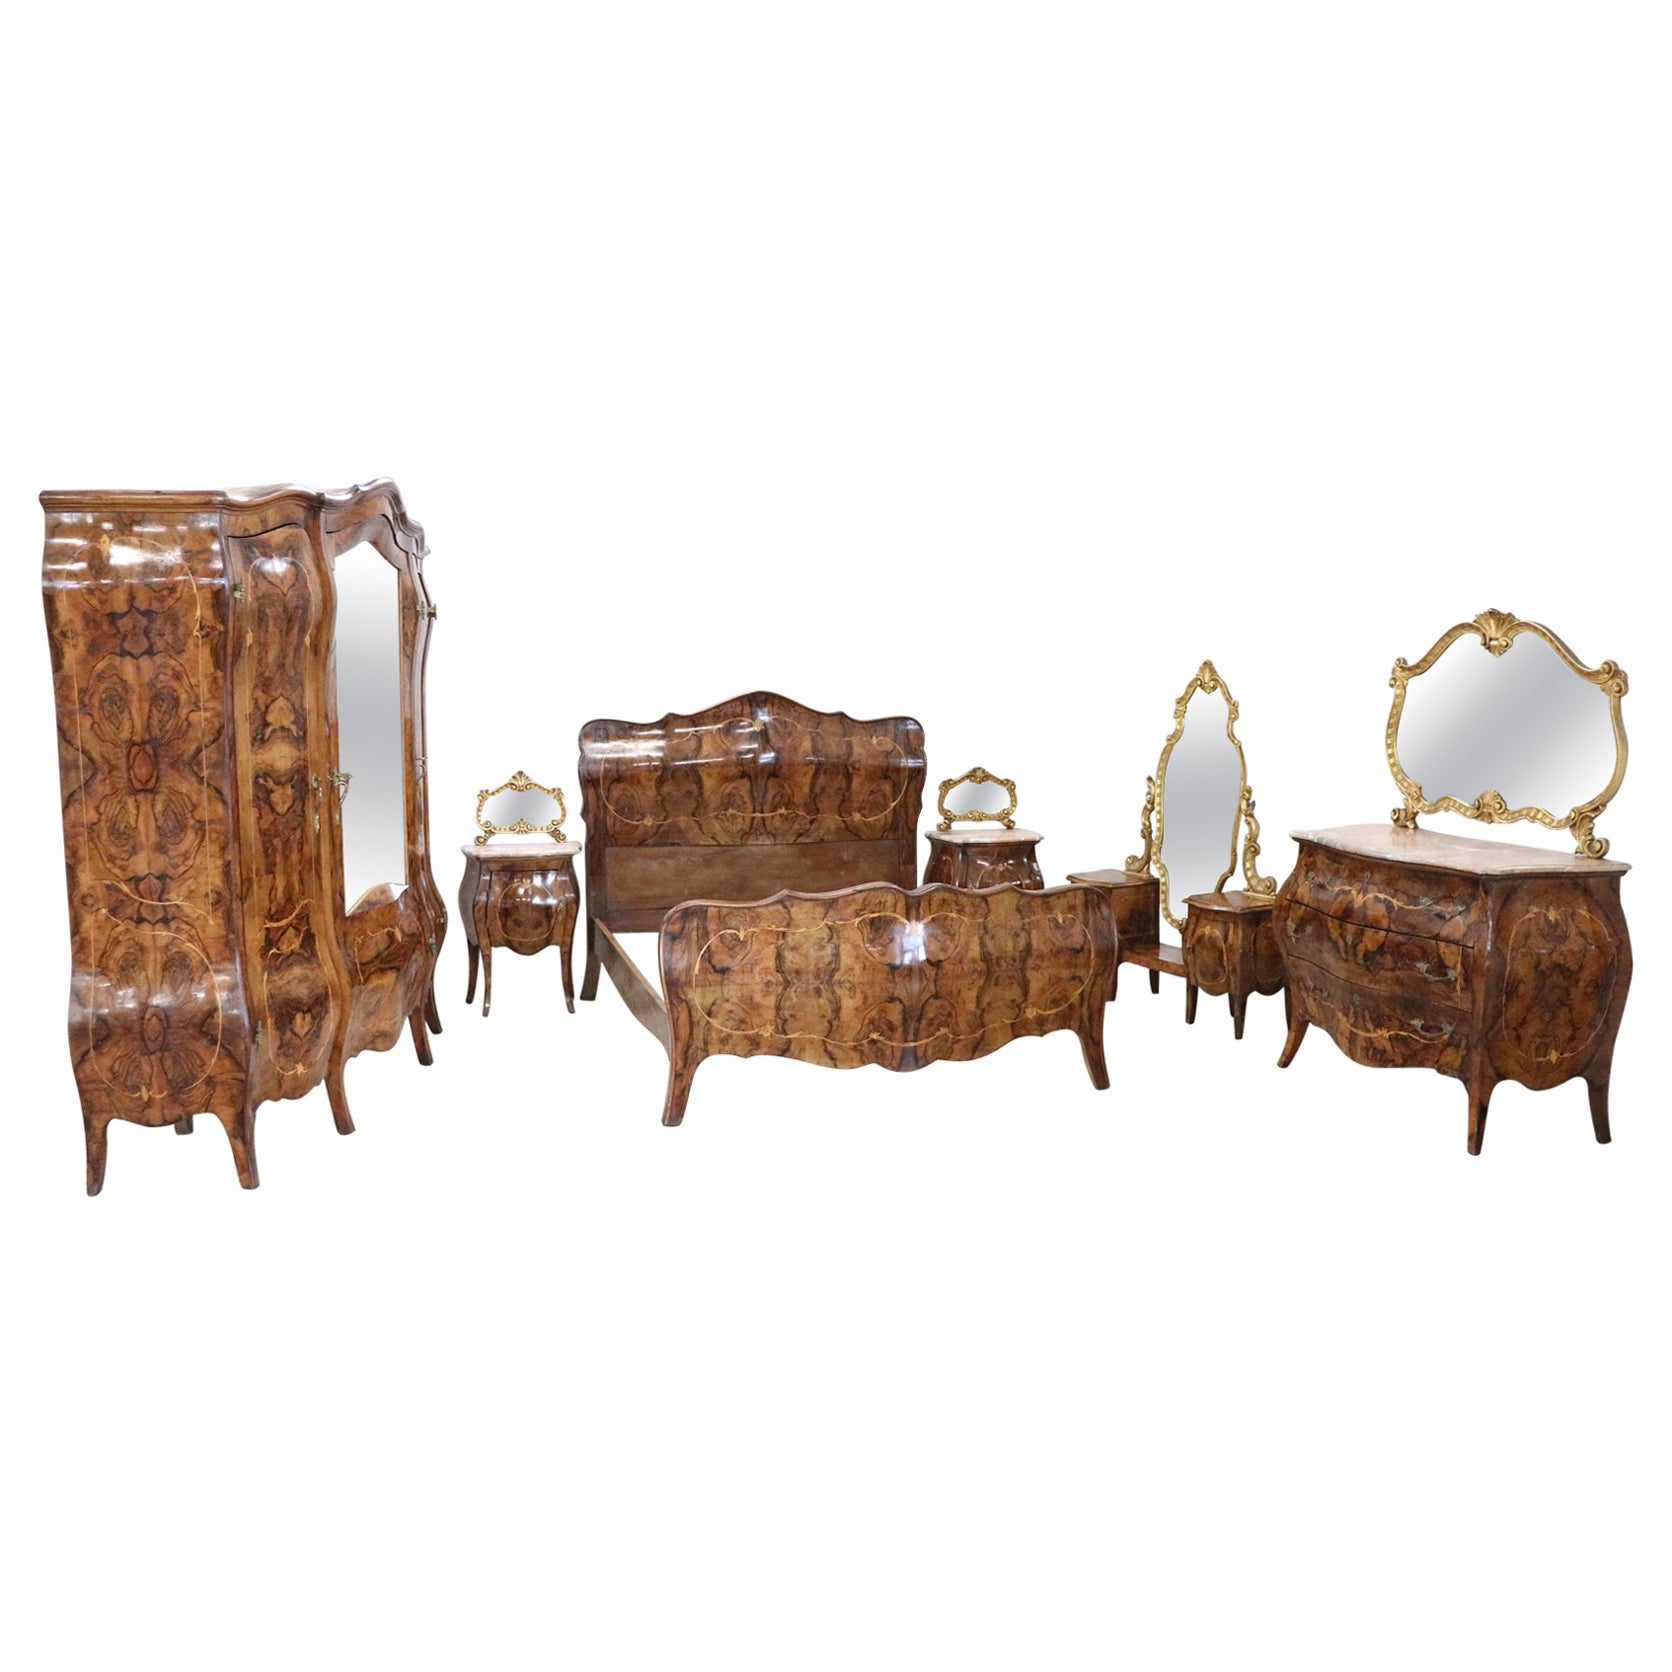 20th Century Italian Louis XV Style Gilded and Inlaid Walnut Bombay Bedroom Set